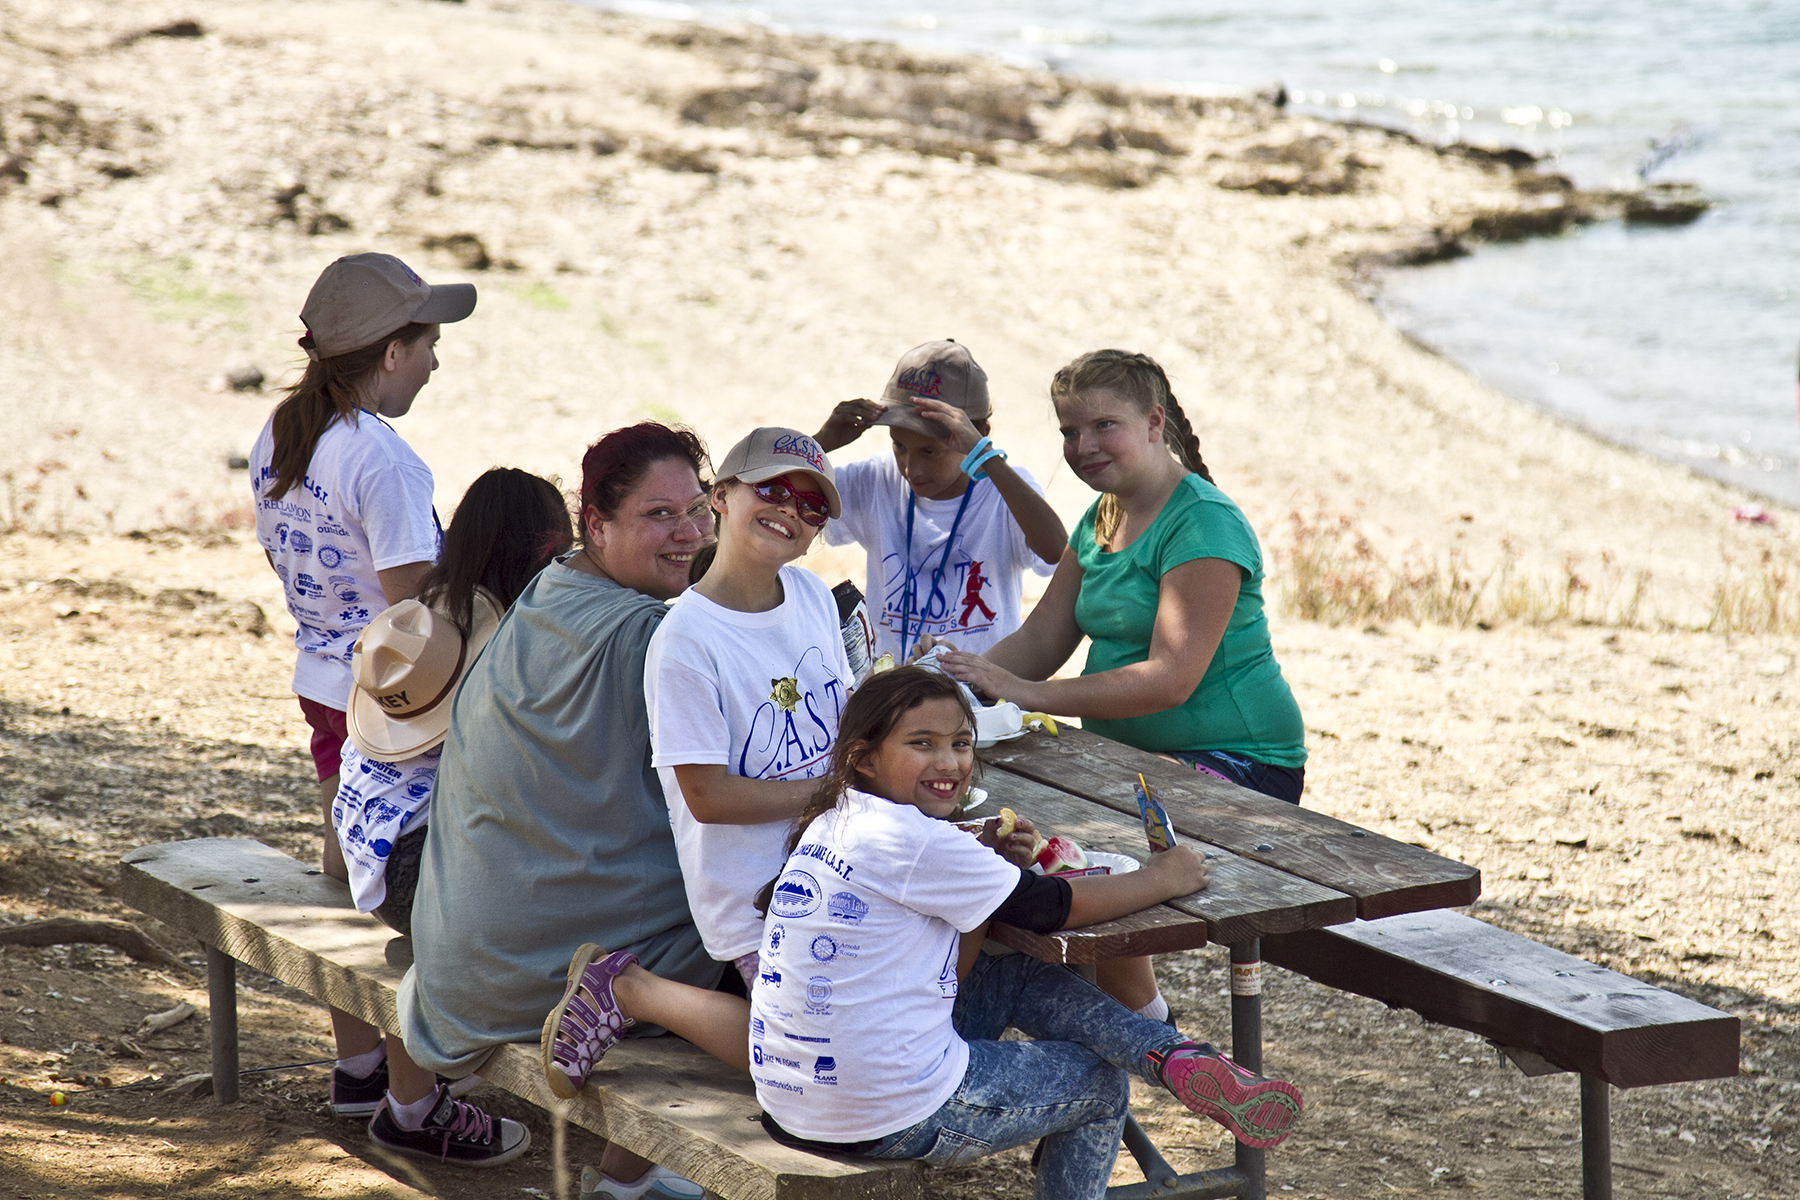 A group of participants pose for a picture during the barbecue lunch at the C.A.S.T. for Kids event at New Melones Lake